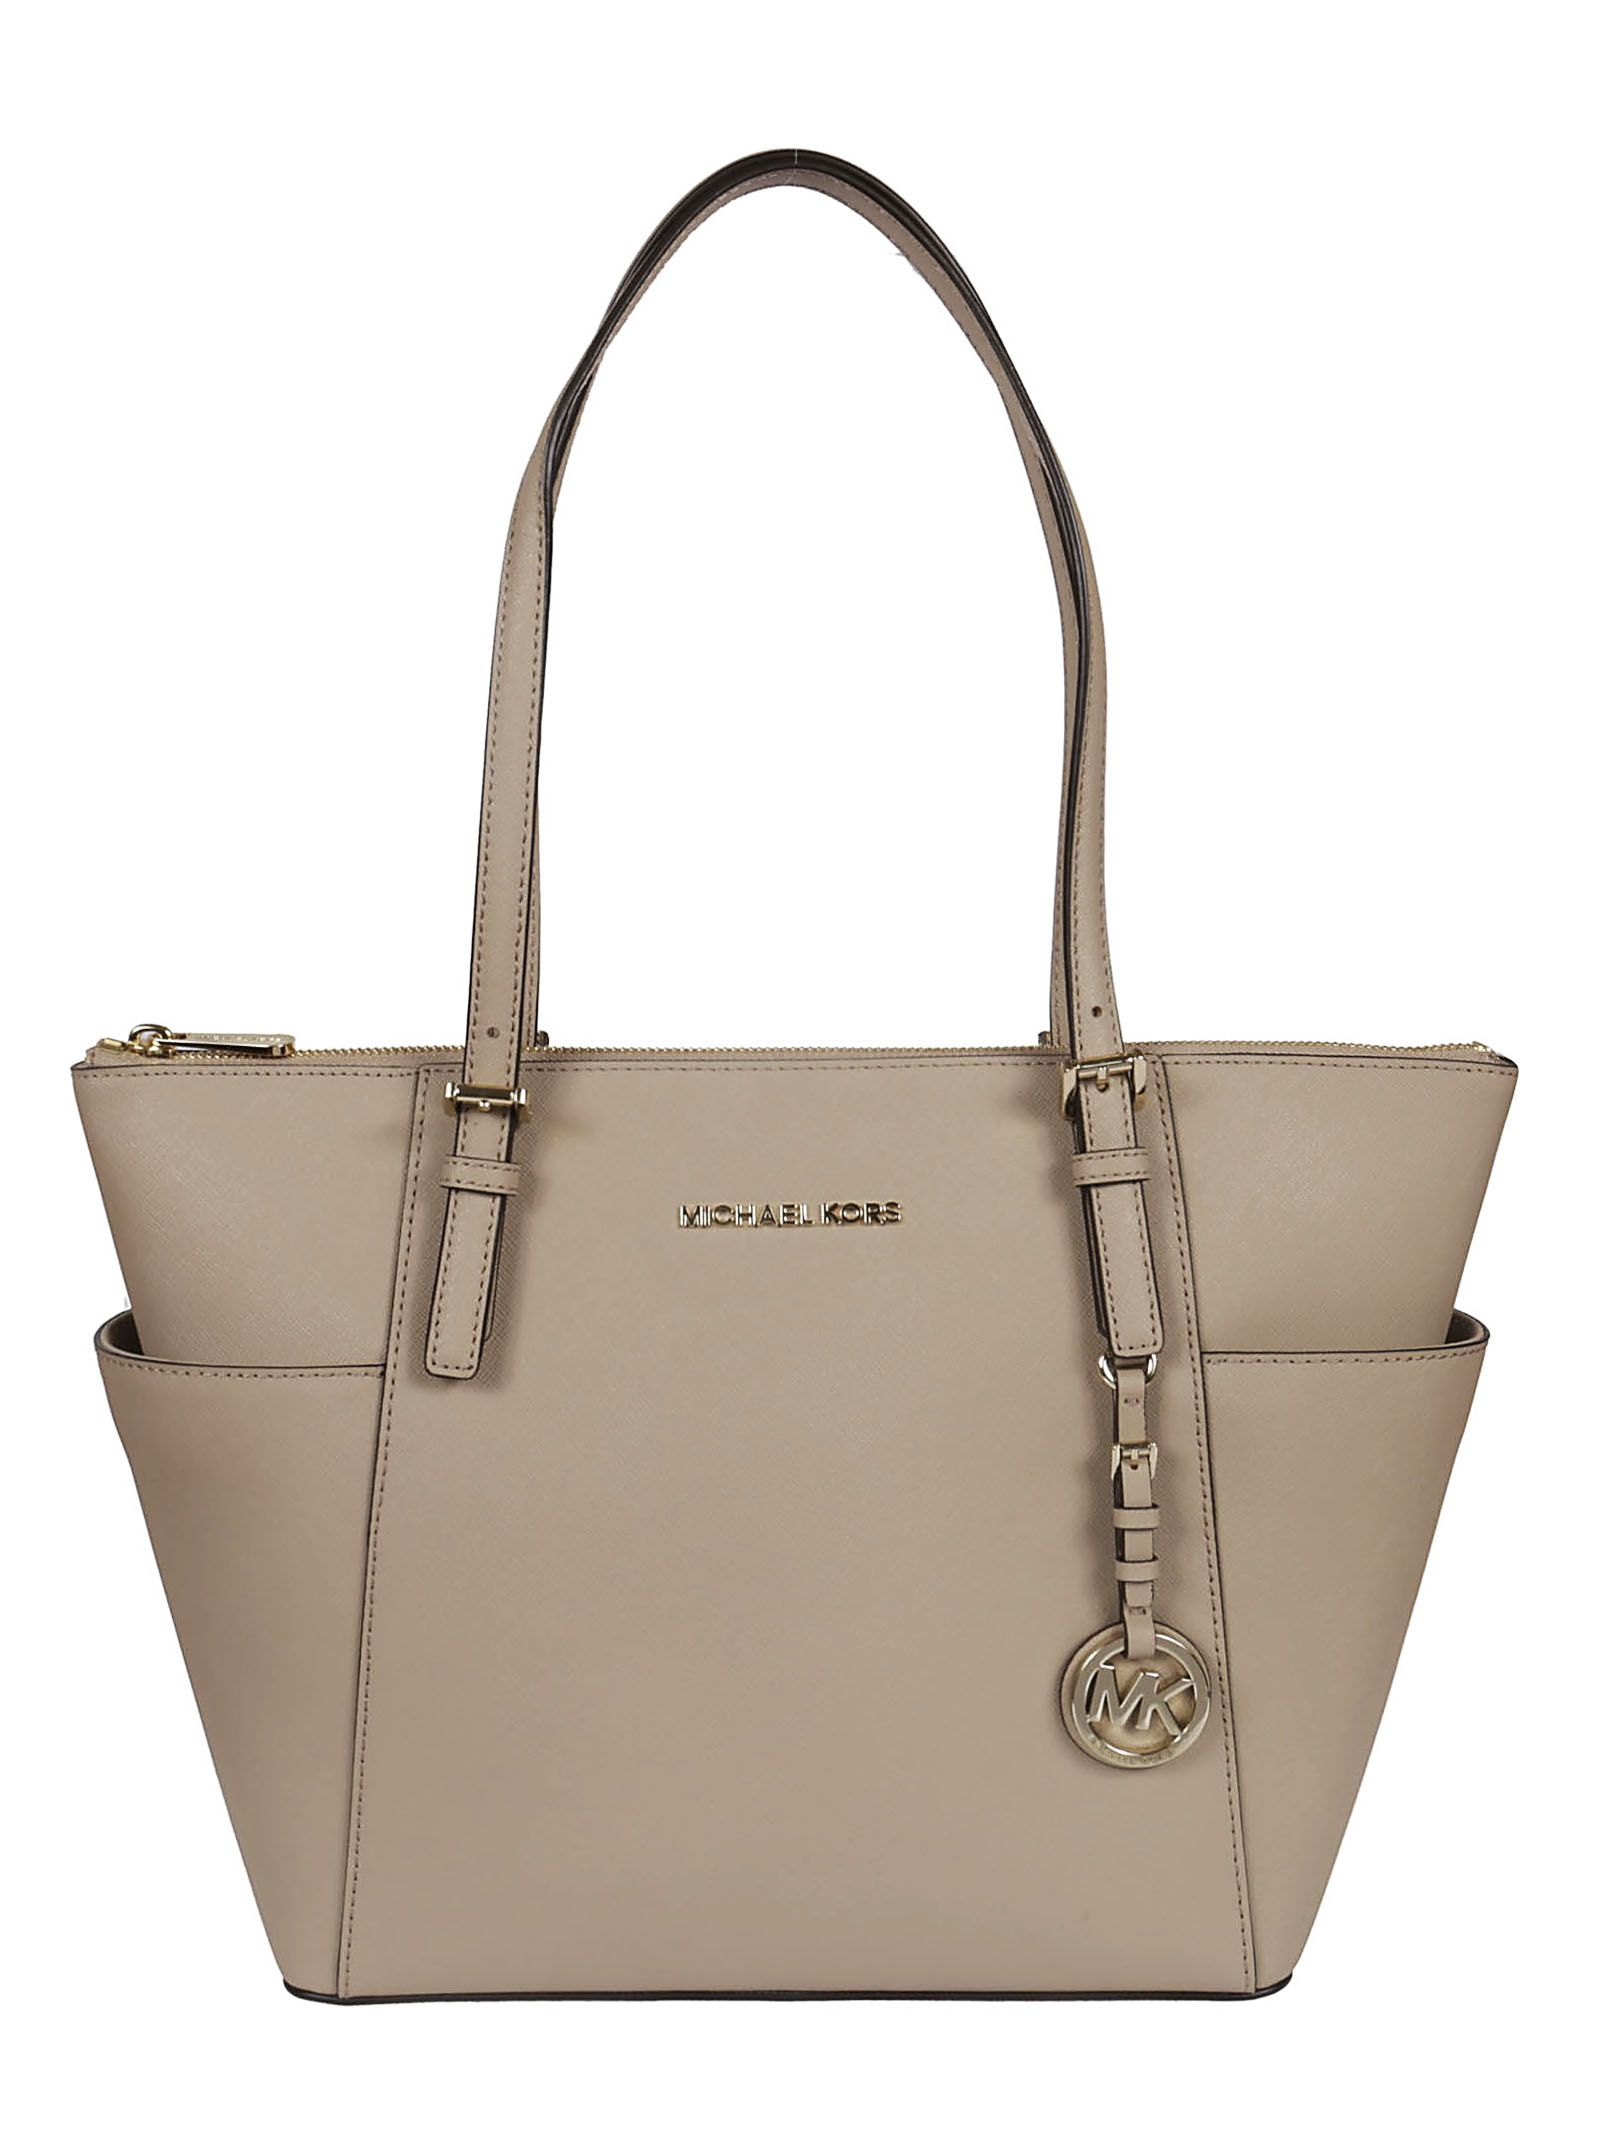 Product. Go to shop · 305.82 · michael kors jet set tote dcff6e839f666